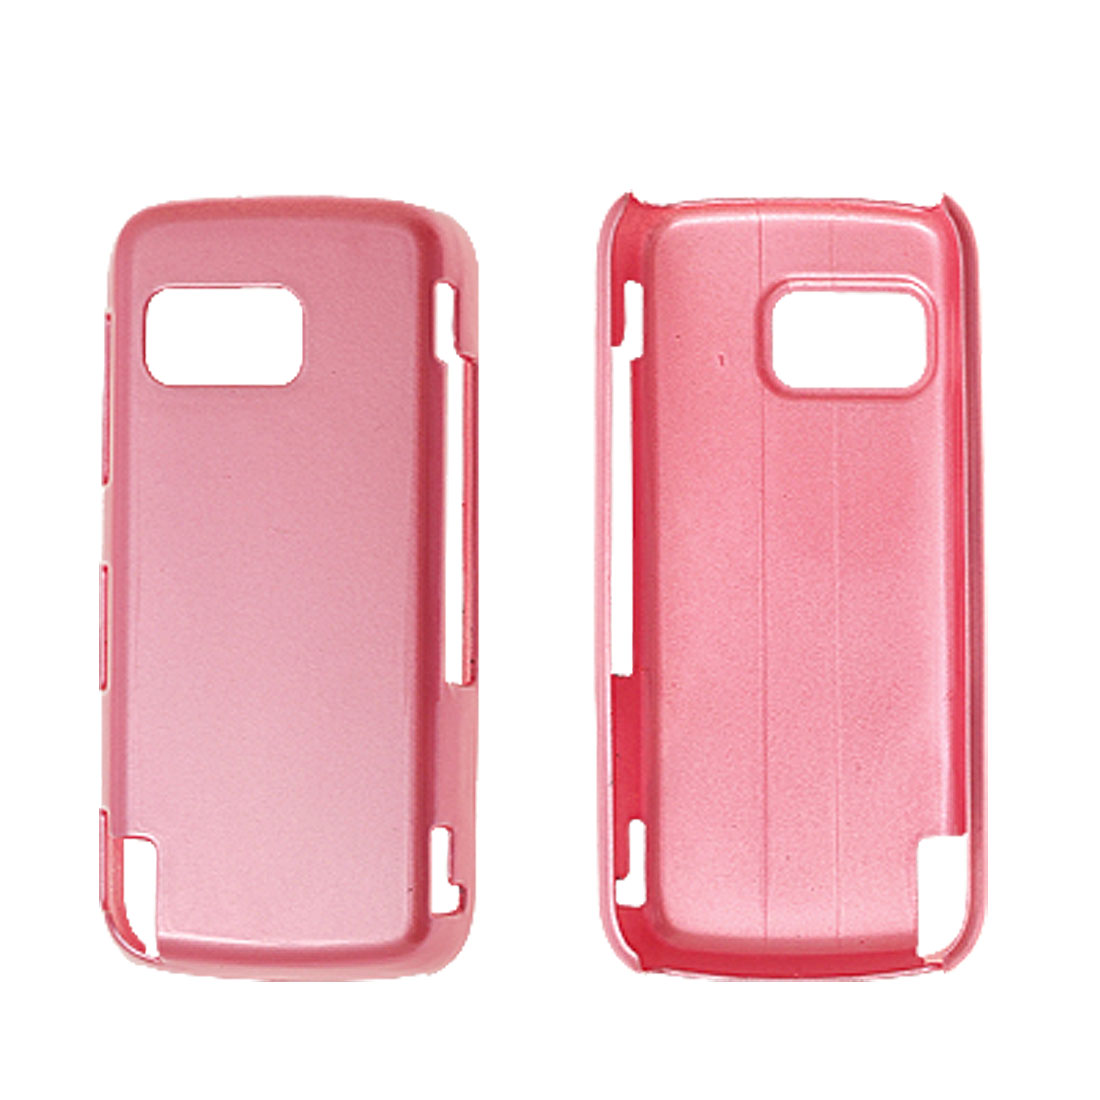 Plastic Back Shield Case Cover for Nokia 5800 Pink